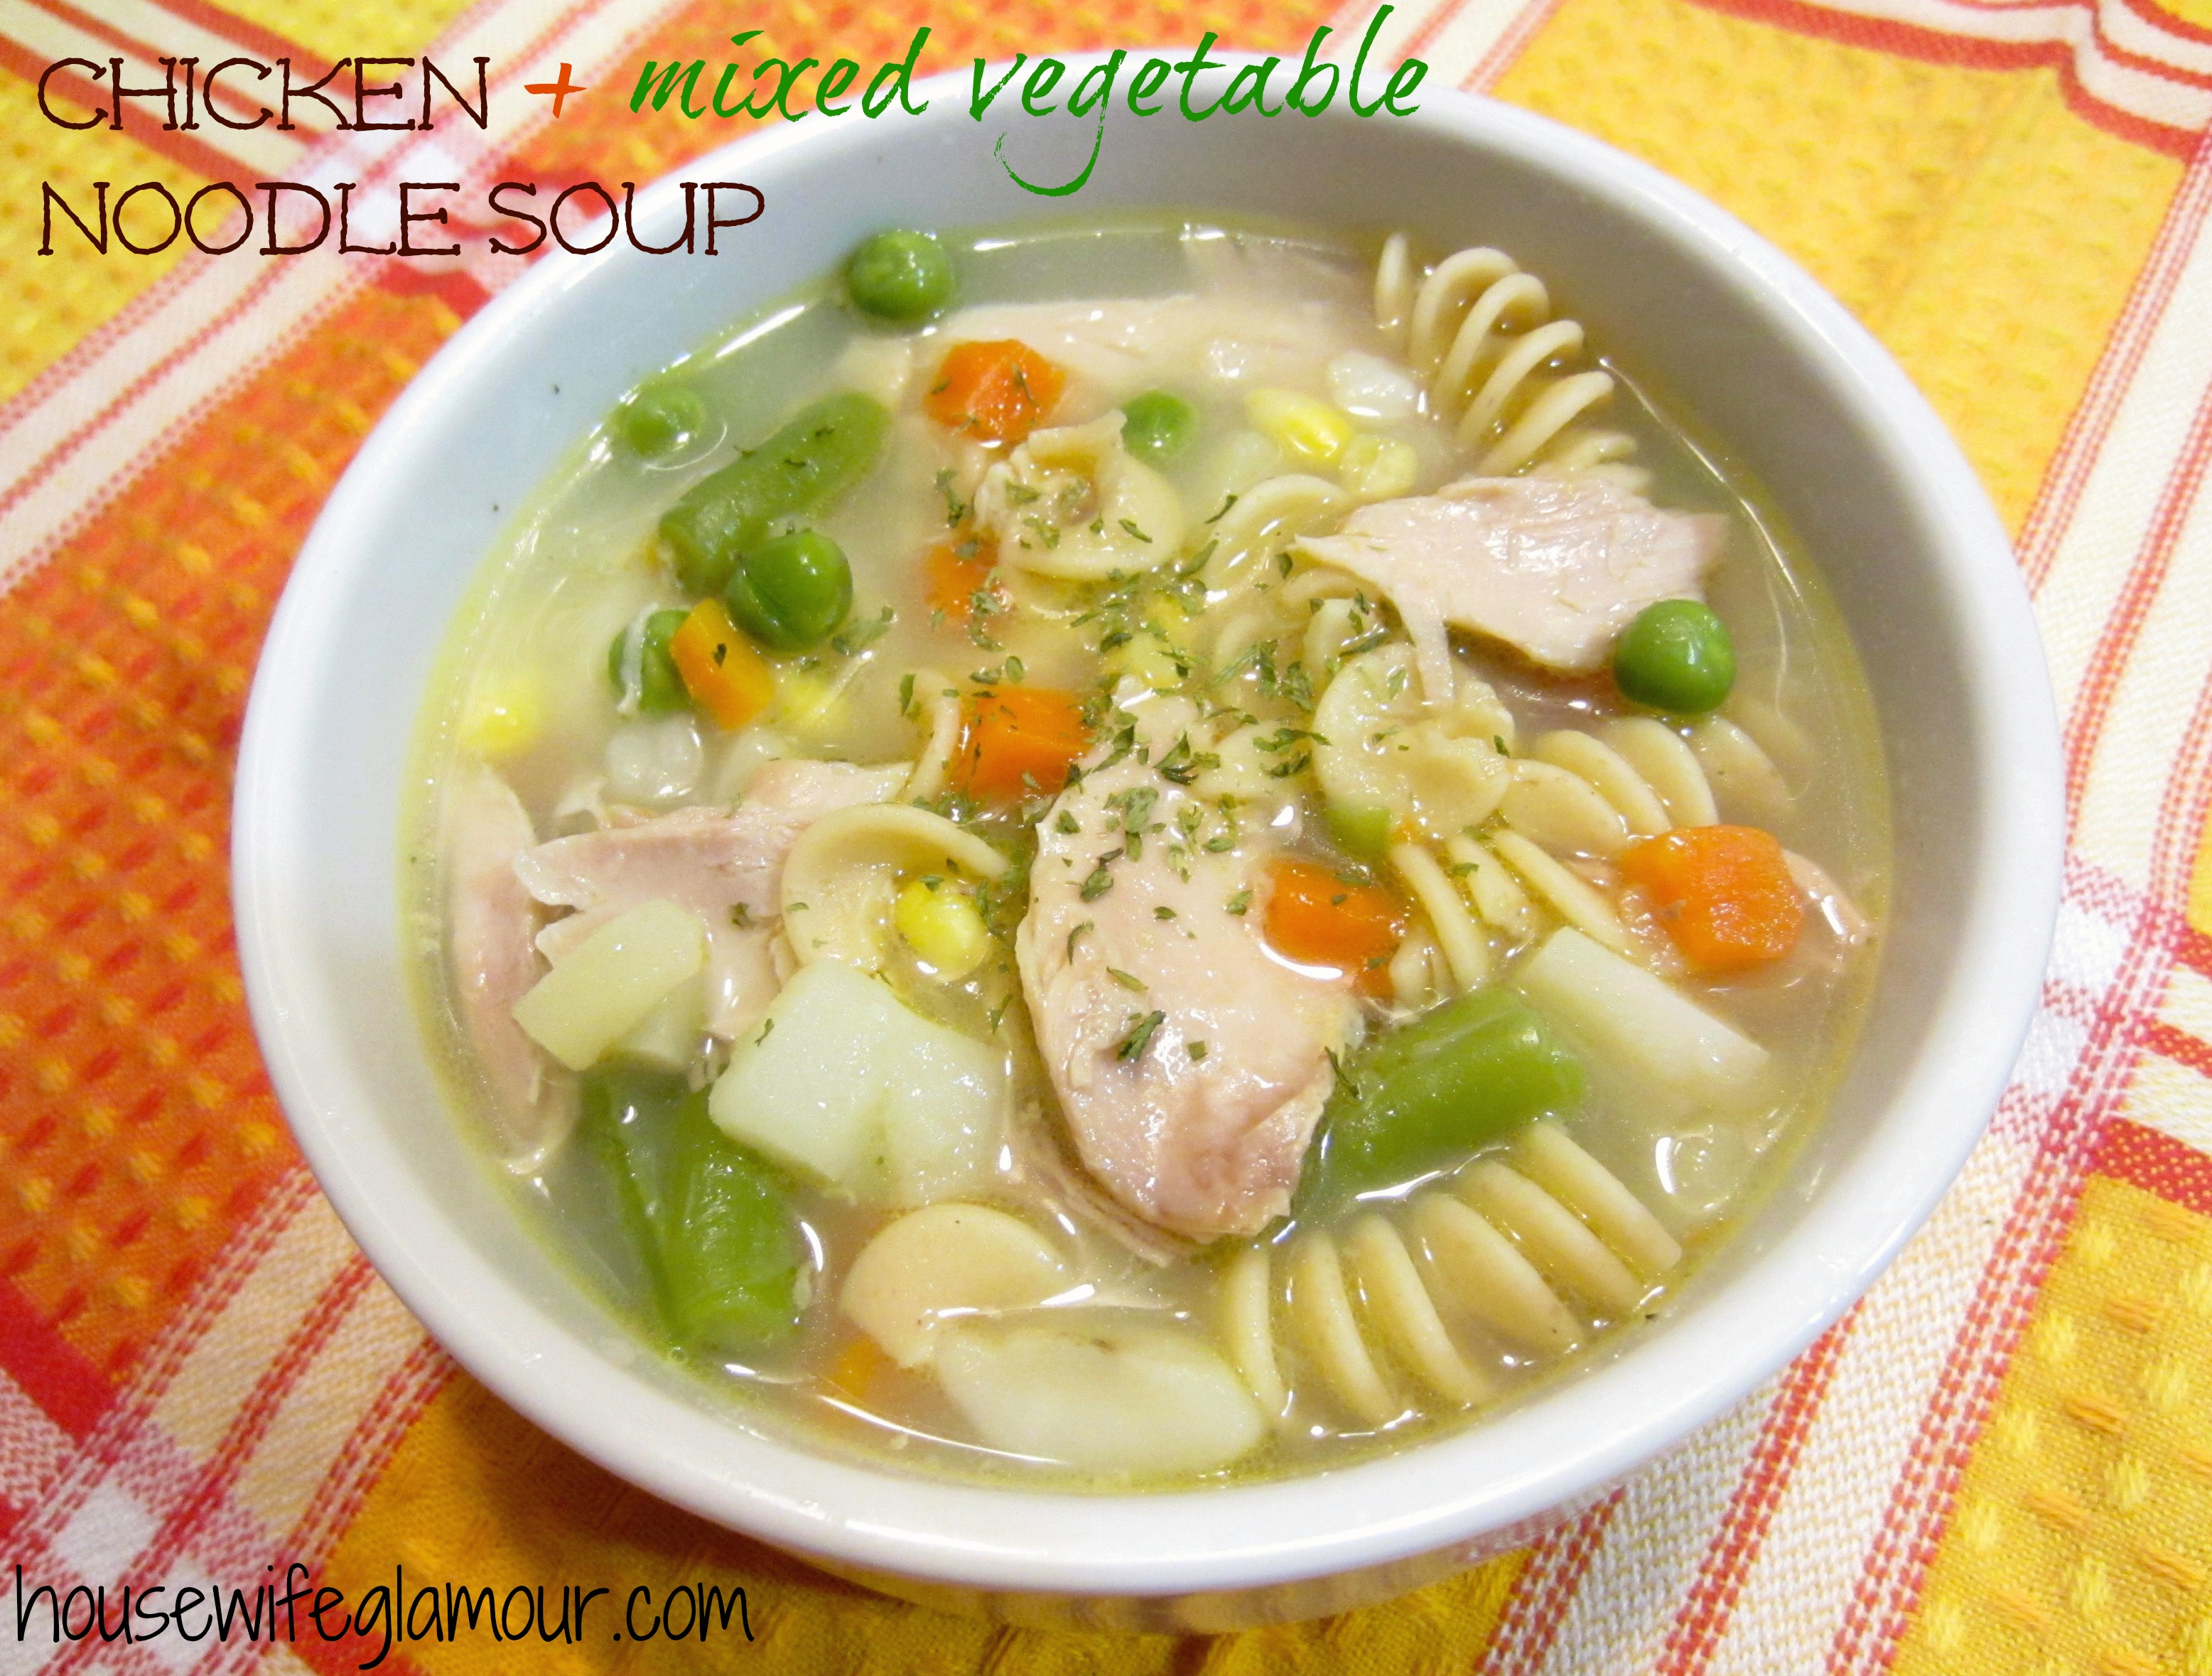 Chicken and Mixed Vegetable Noodle Soup